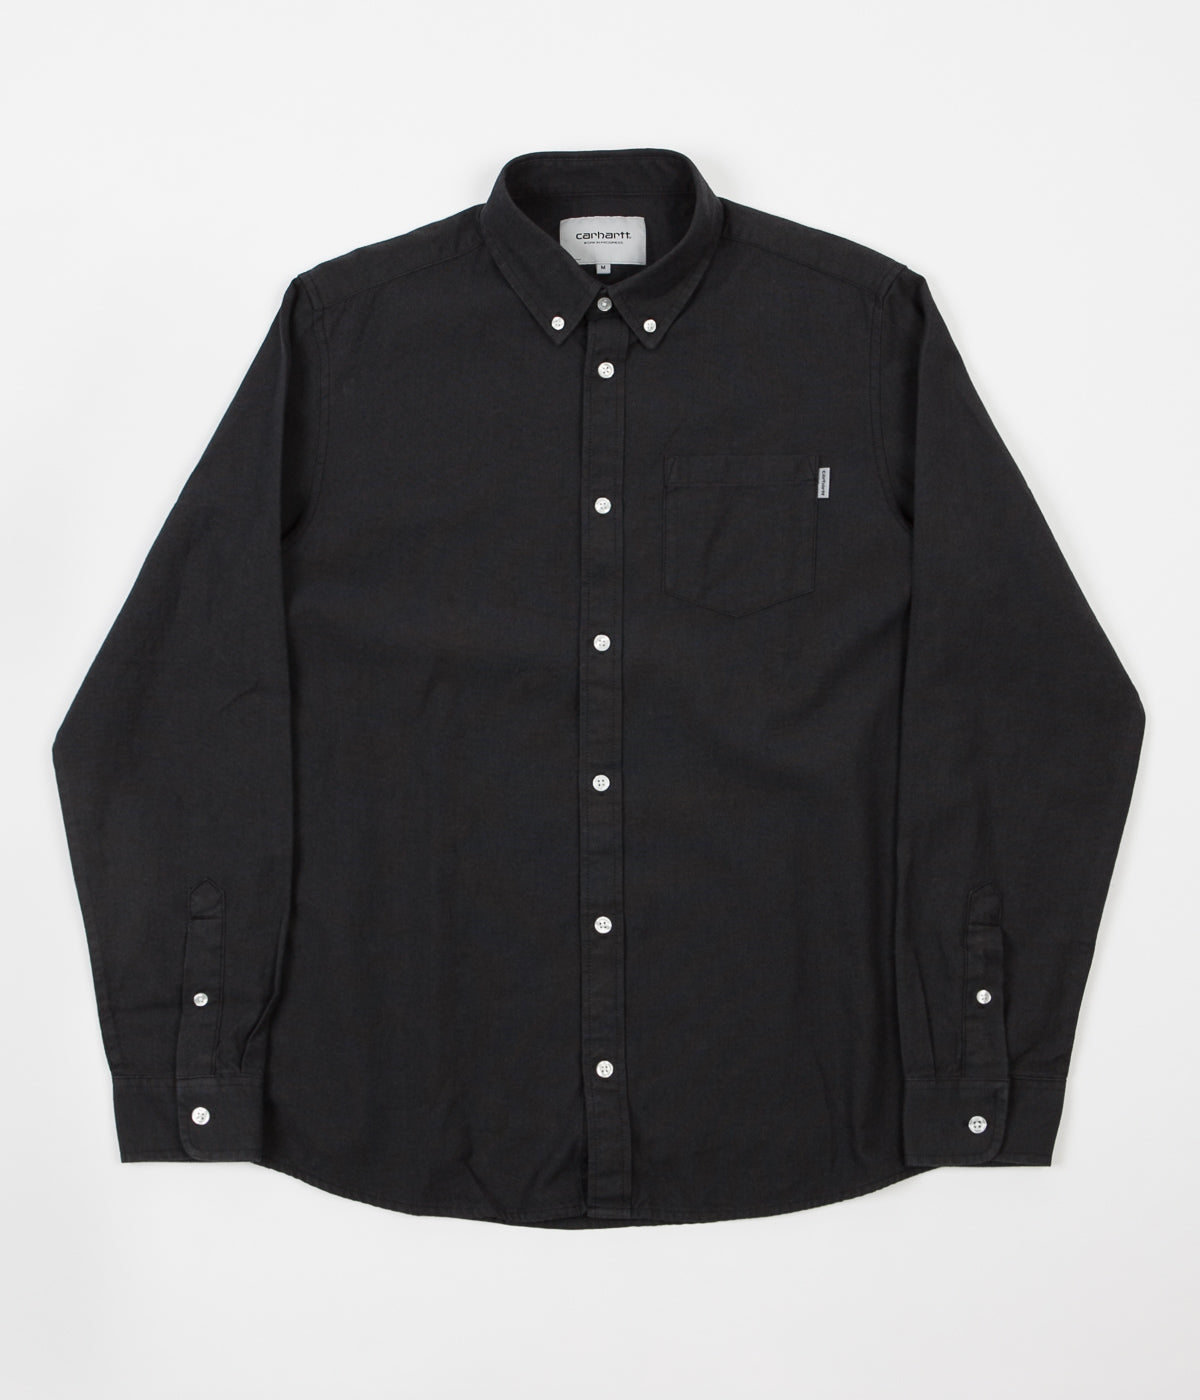 Carhartt Dalton Shirt - Black / Blacksmith